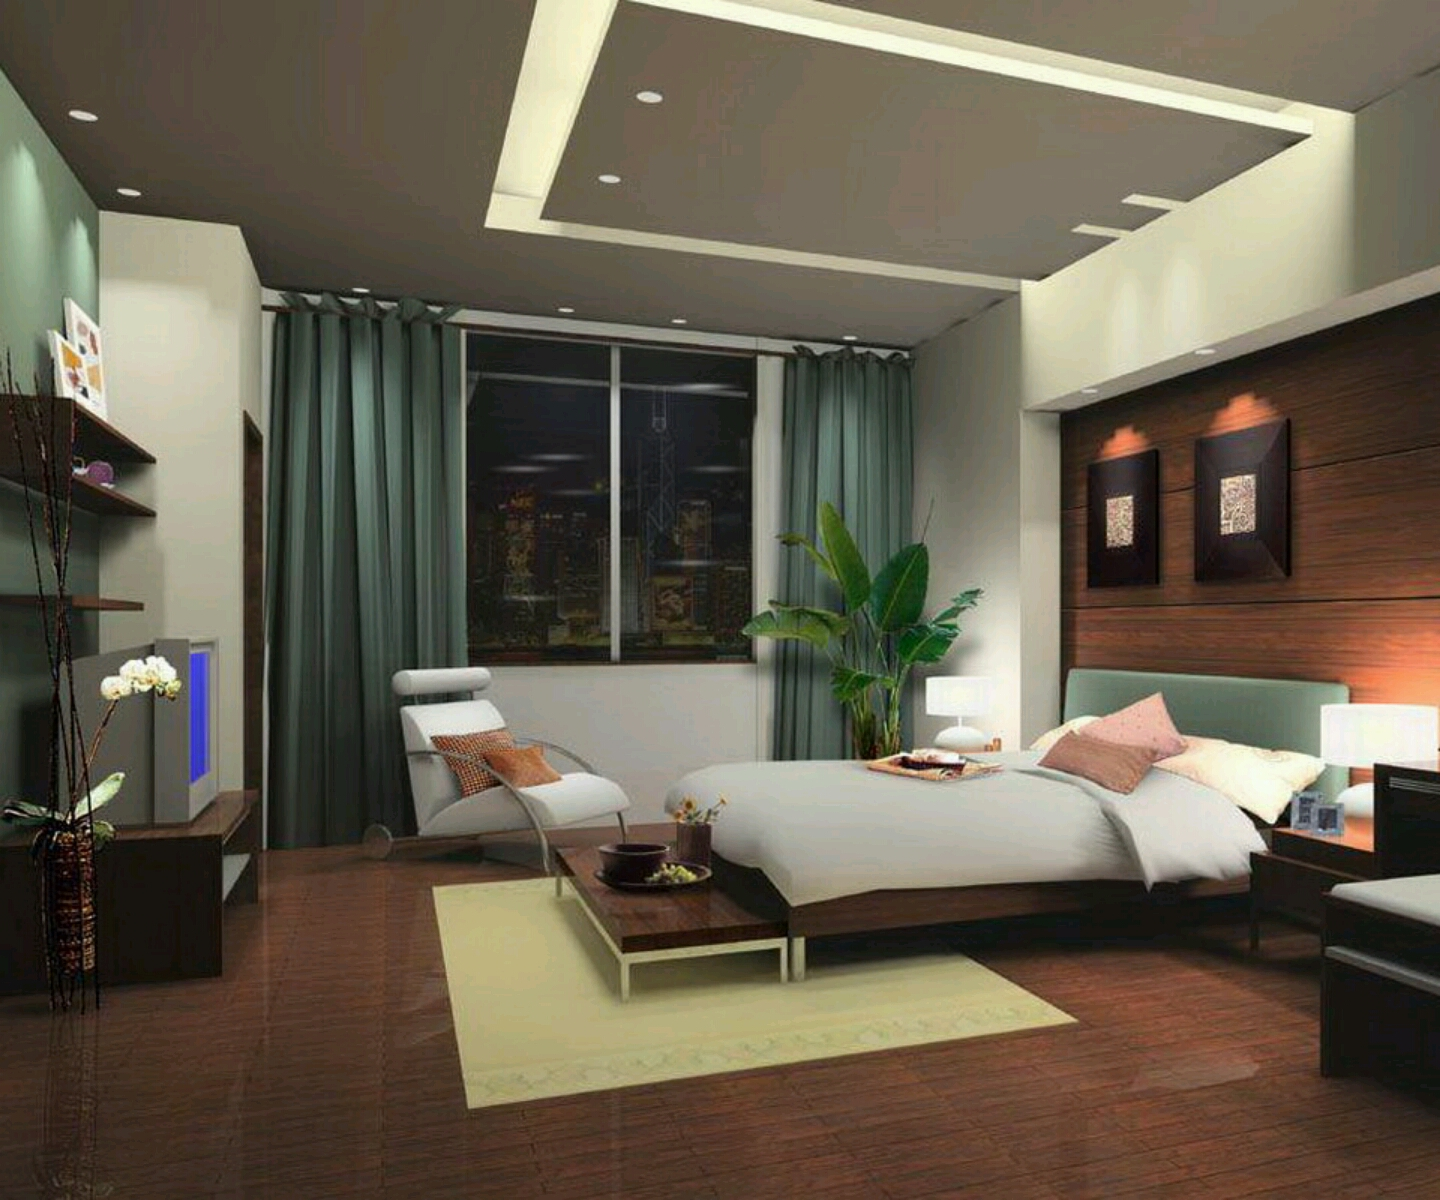 New home designs latest modern bedrooms designs best ideas for Home bedroom design photos